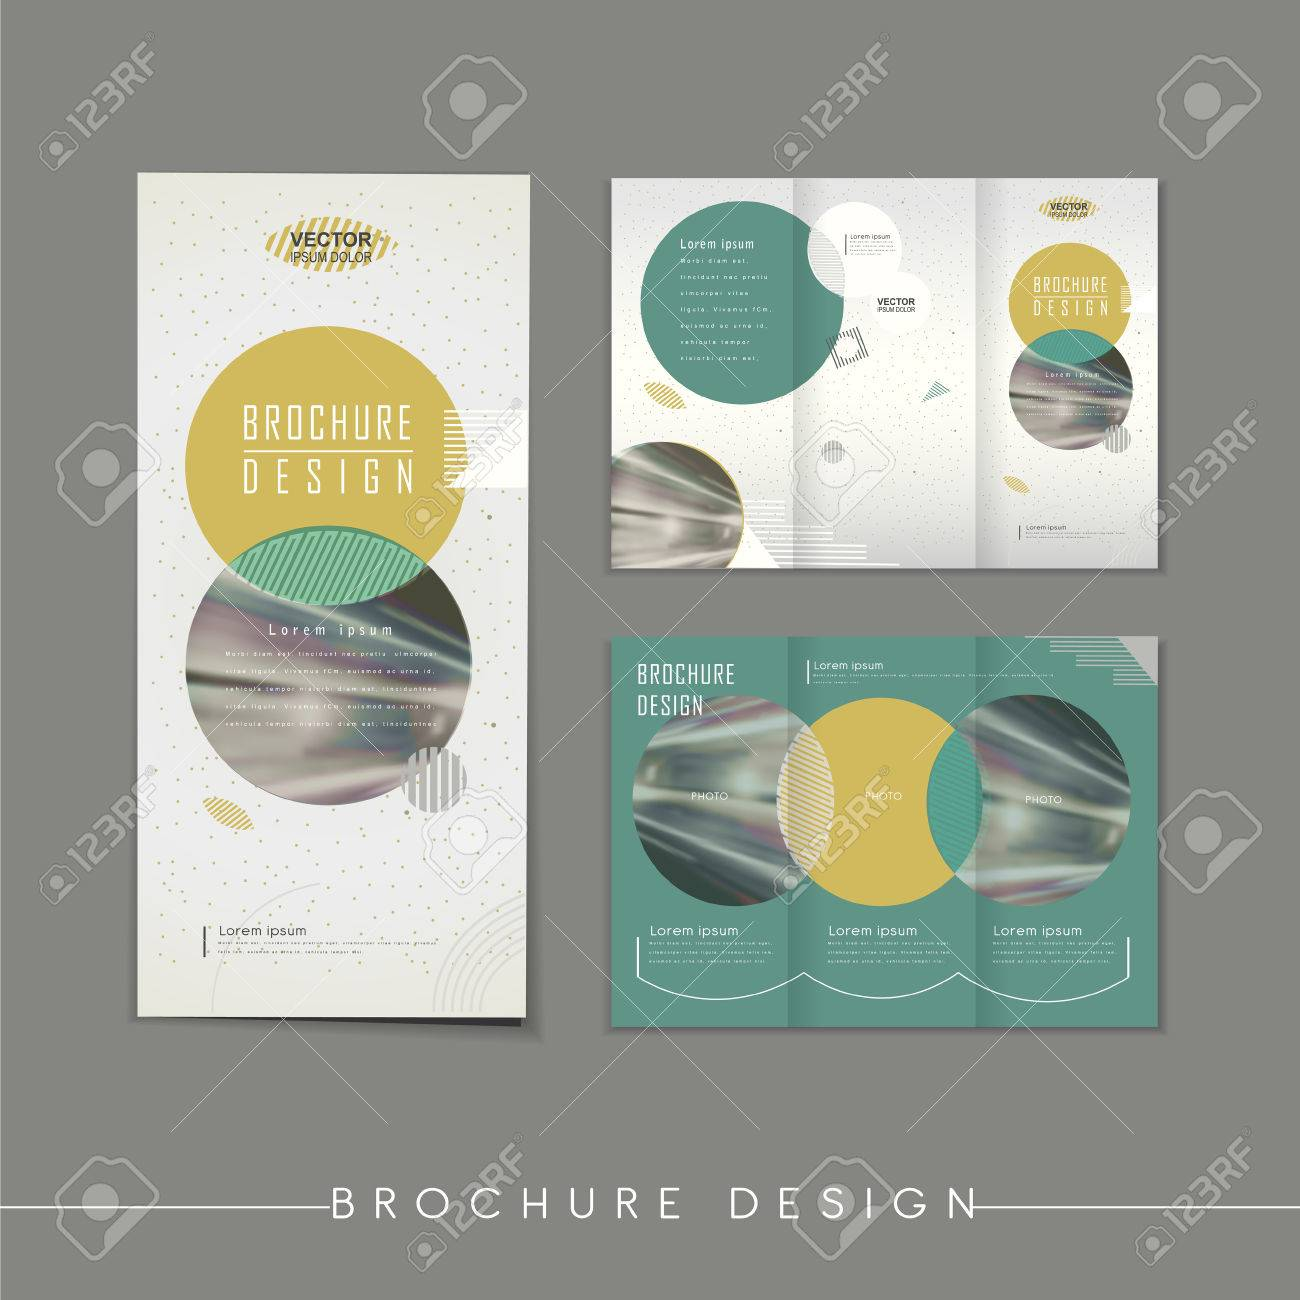 modern abstract tri fold brochure template design with circle